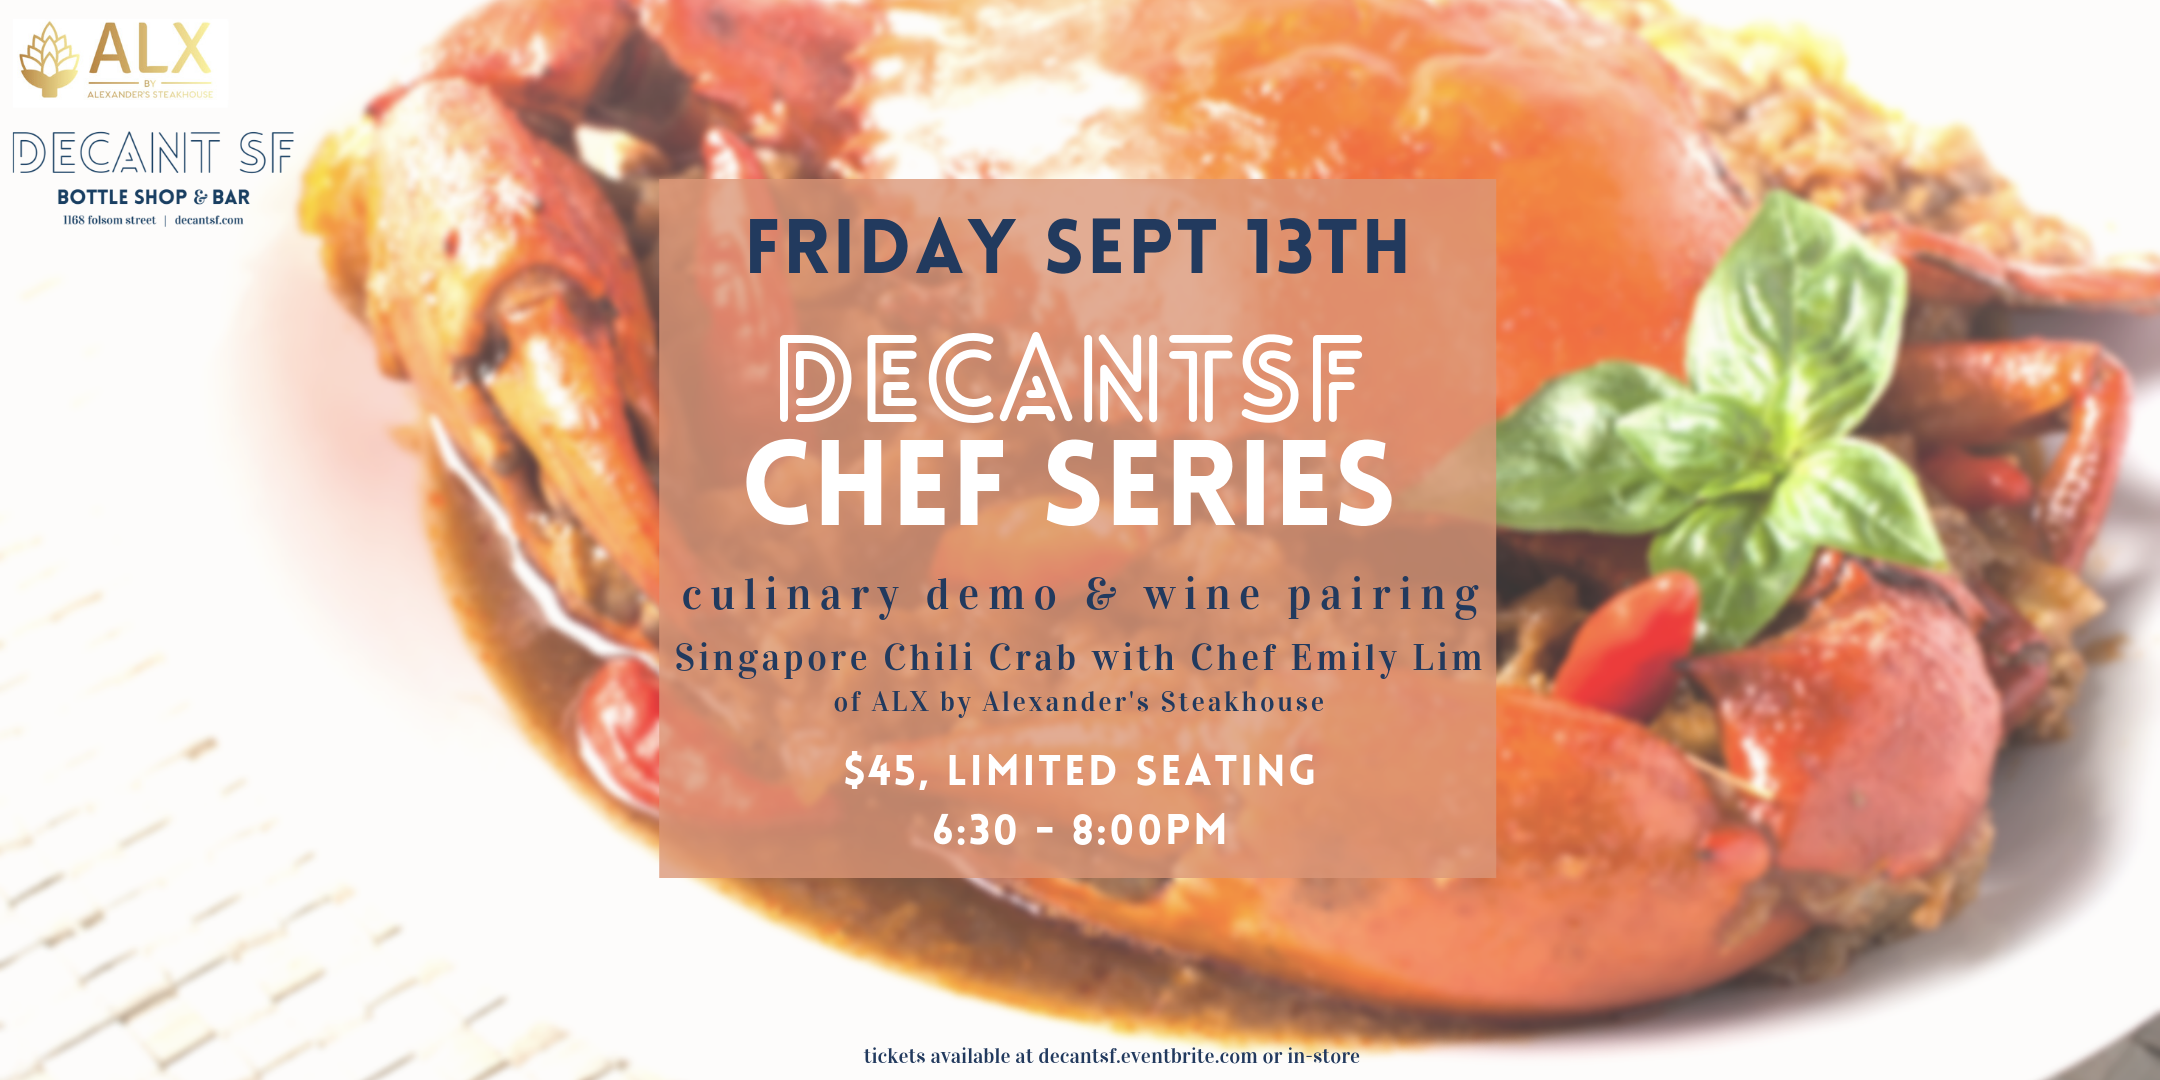 Watch as Chef Emily Lim of ALX by Alexander Steakhouse brings you a recipe dear to her heart and homeland: Chili Crab. Chef Lim will teach you how to make Mantou buns and this classic dish, while Simi & Cara put pairings to the test. What will be your favourite?